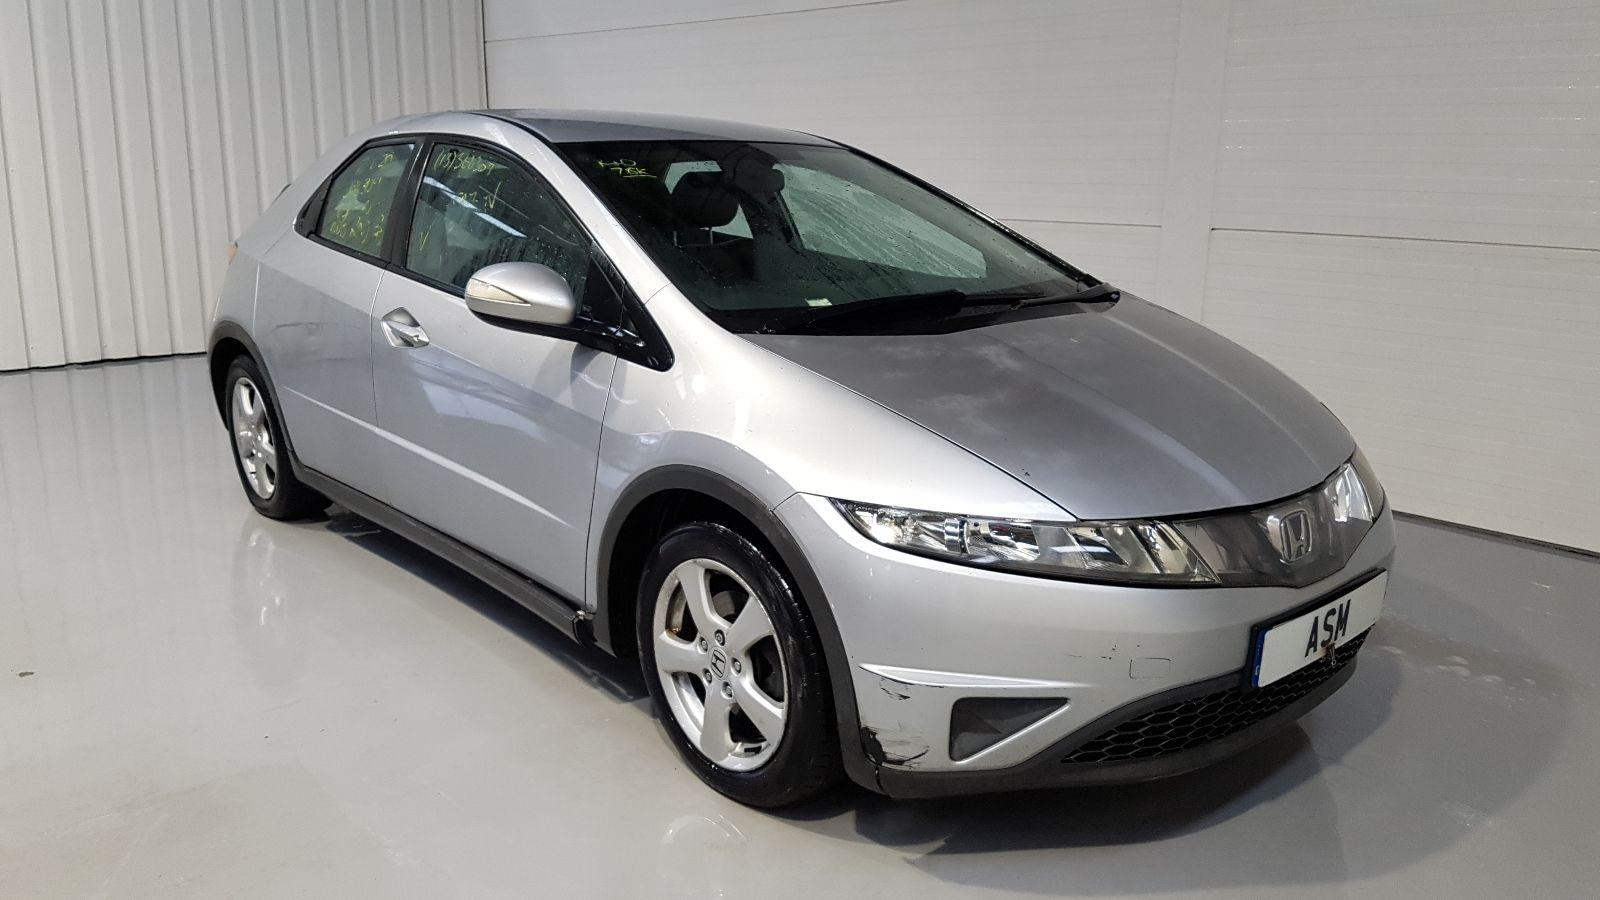 Image for a Honda Civic 2009 5 Door Unknown